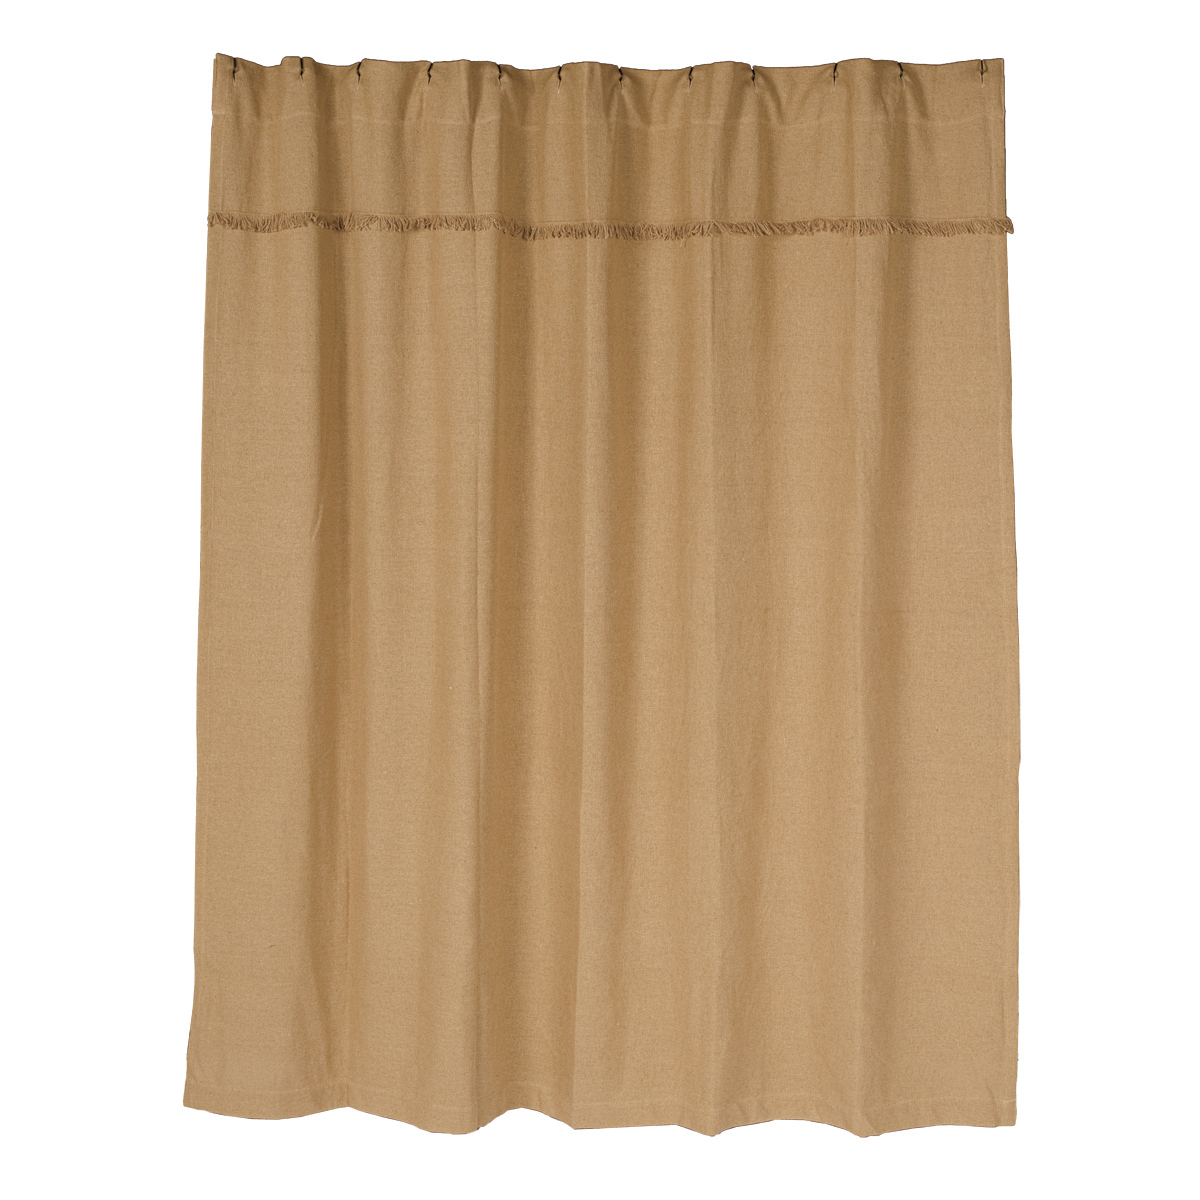 Burlap Natural Unlined Shower Curtain